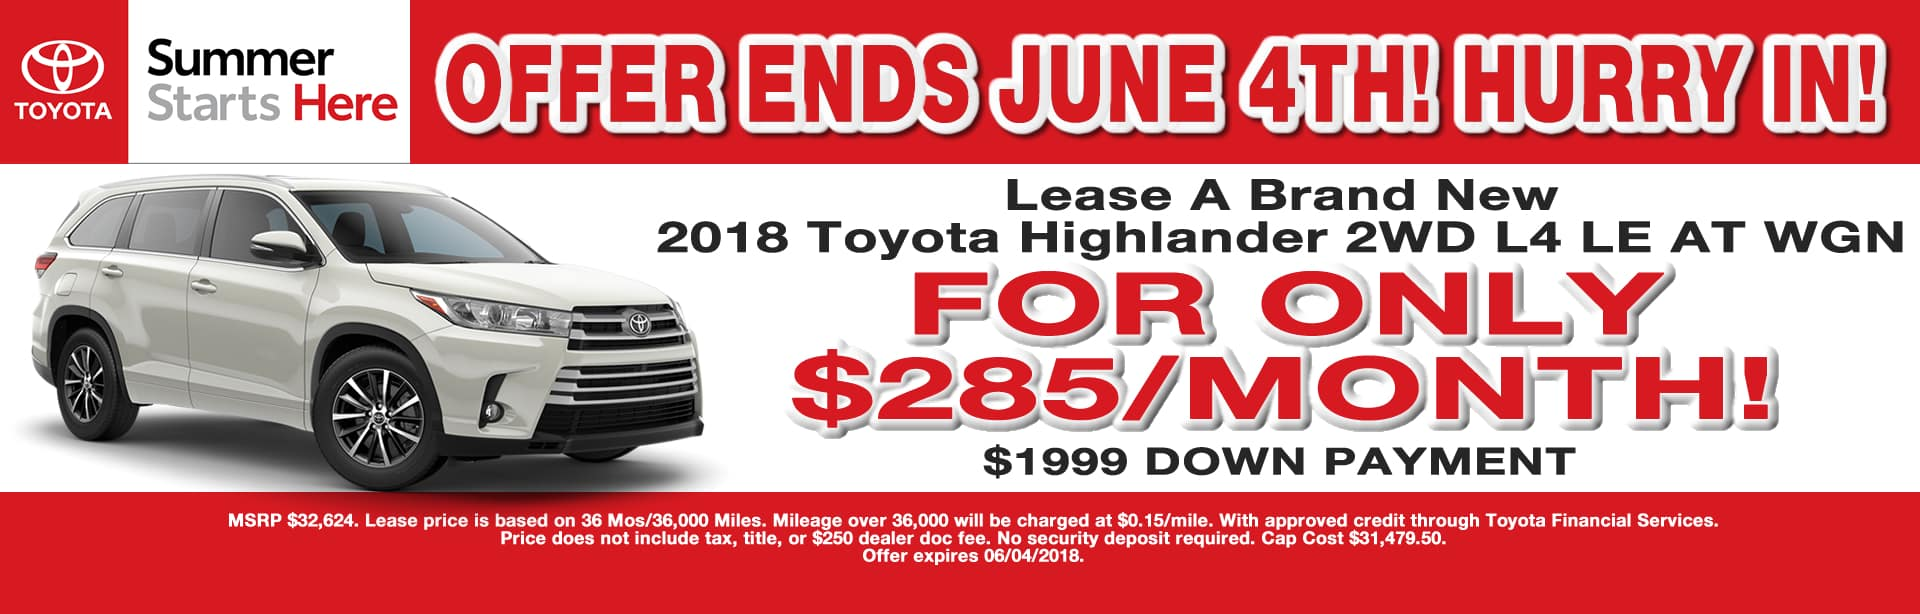 HIGHLANDER LEASE SPECIAL CAIN TOYOTA NORTH CANTON OHIO MAY 2018